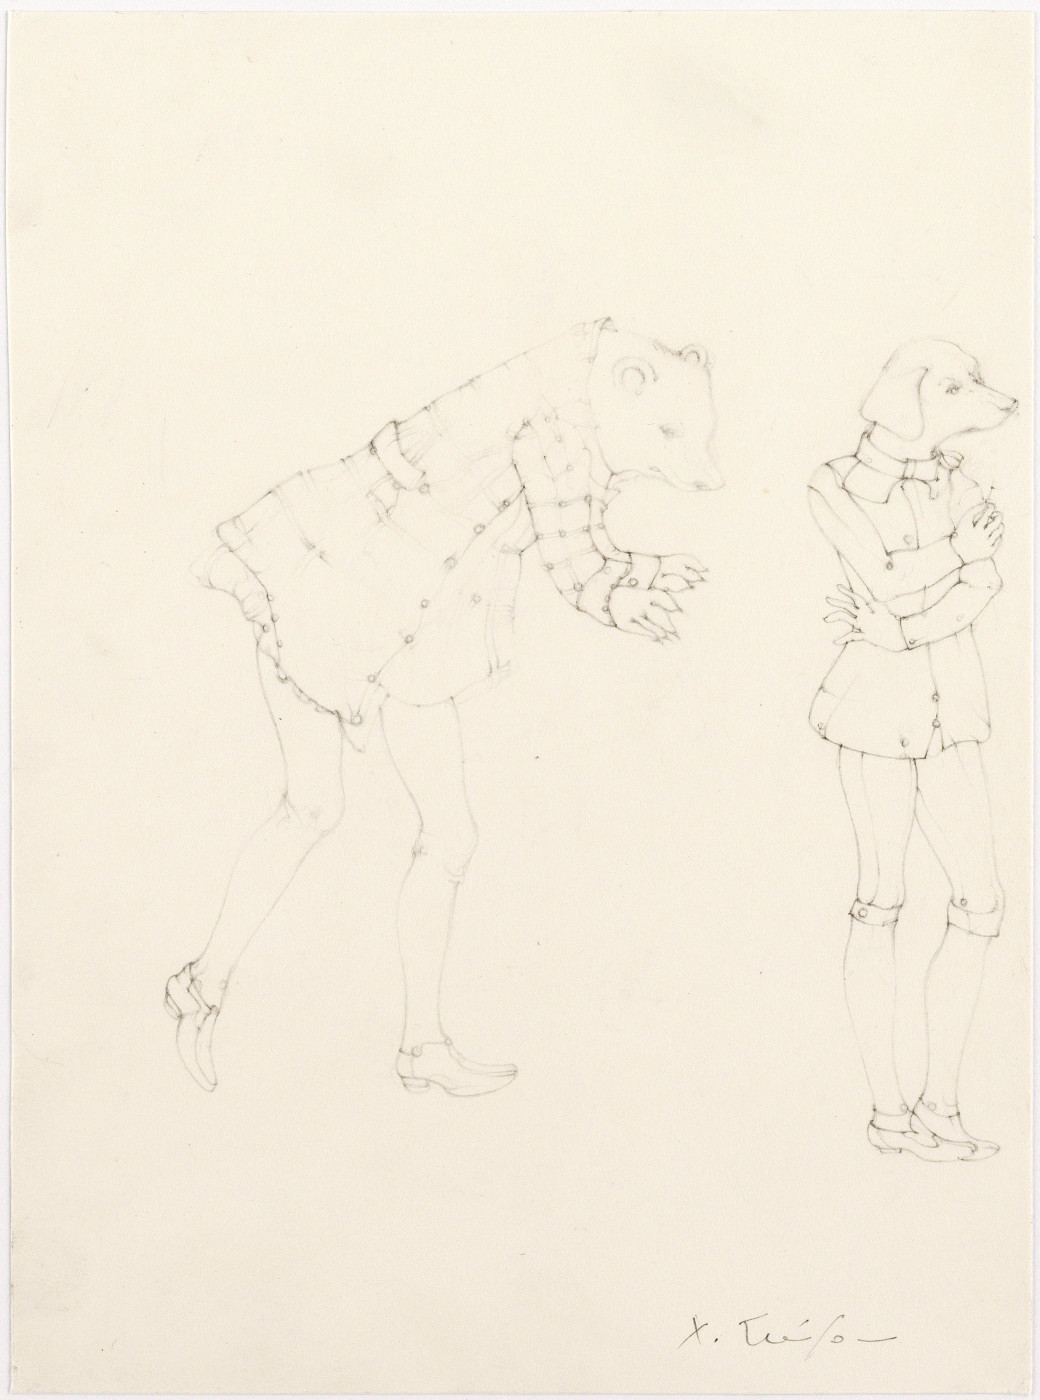 """<div class=""""title""""><em>Oberon's Wish</em>, 2008</div><div class=""""signed_and_dated"""">Signed on front</div><div class=""""medium"""">pencil on paper</div><div class=""""dimensions"""">20.3 x 15.1 cm<br />8 x 6 in.</div>"""